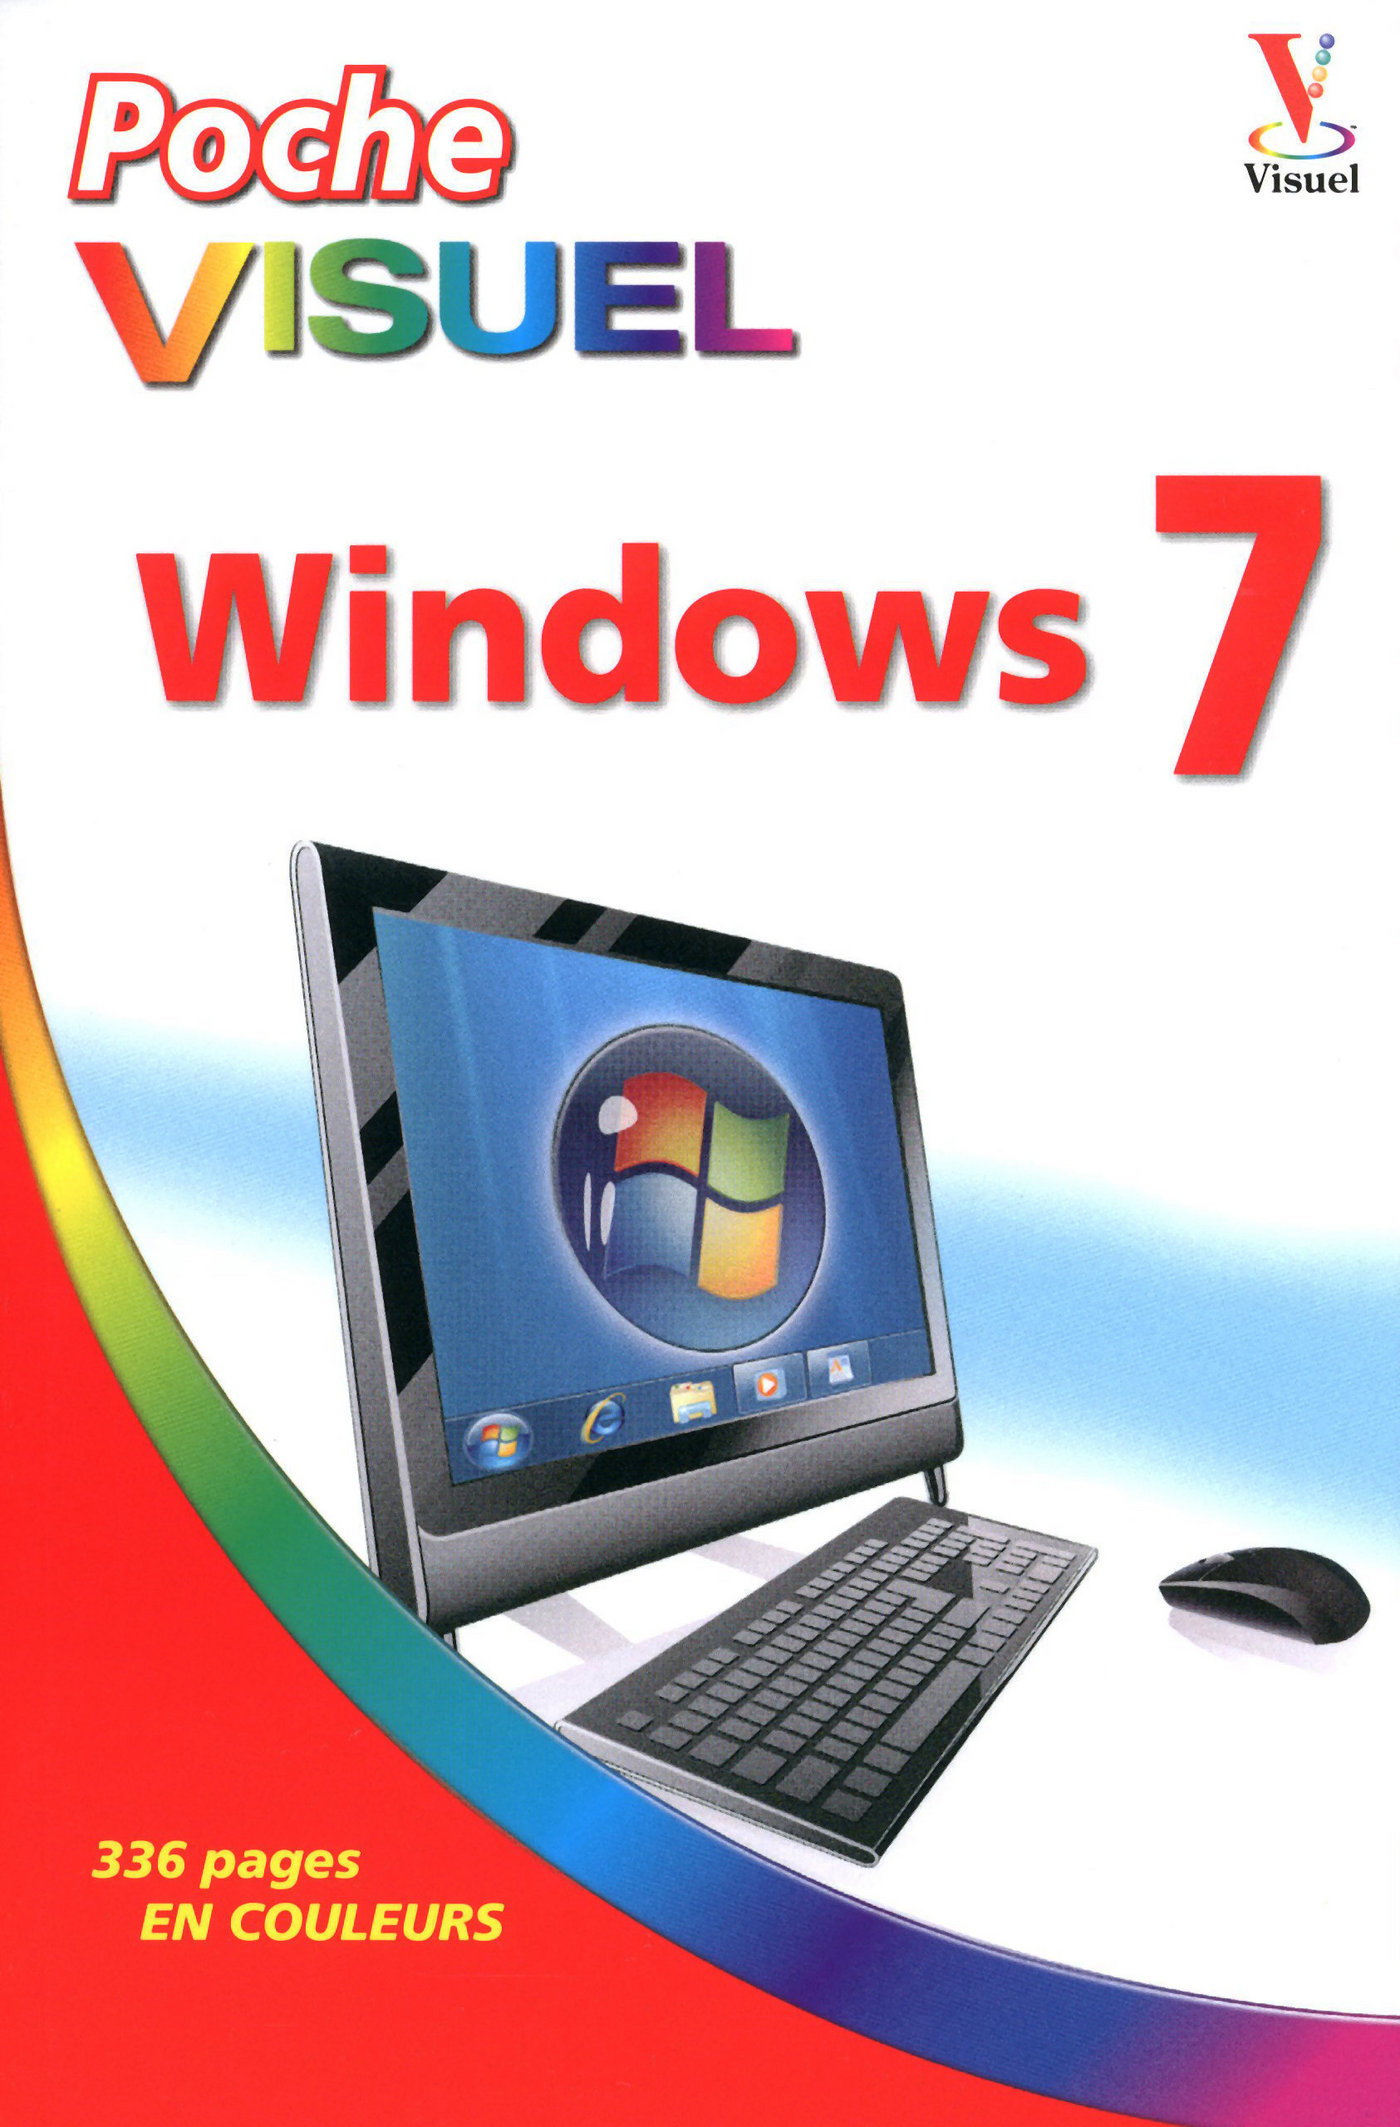 Poche Visuel Windows 7